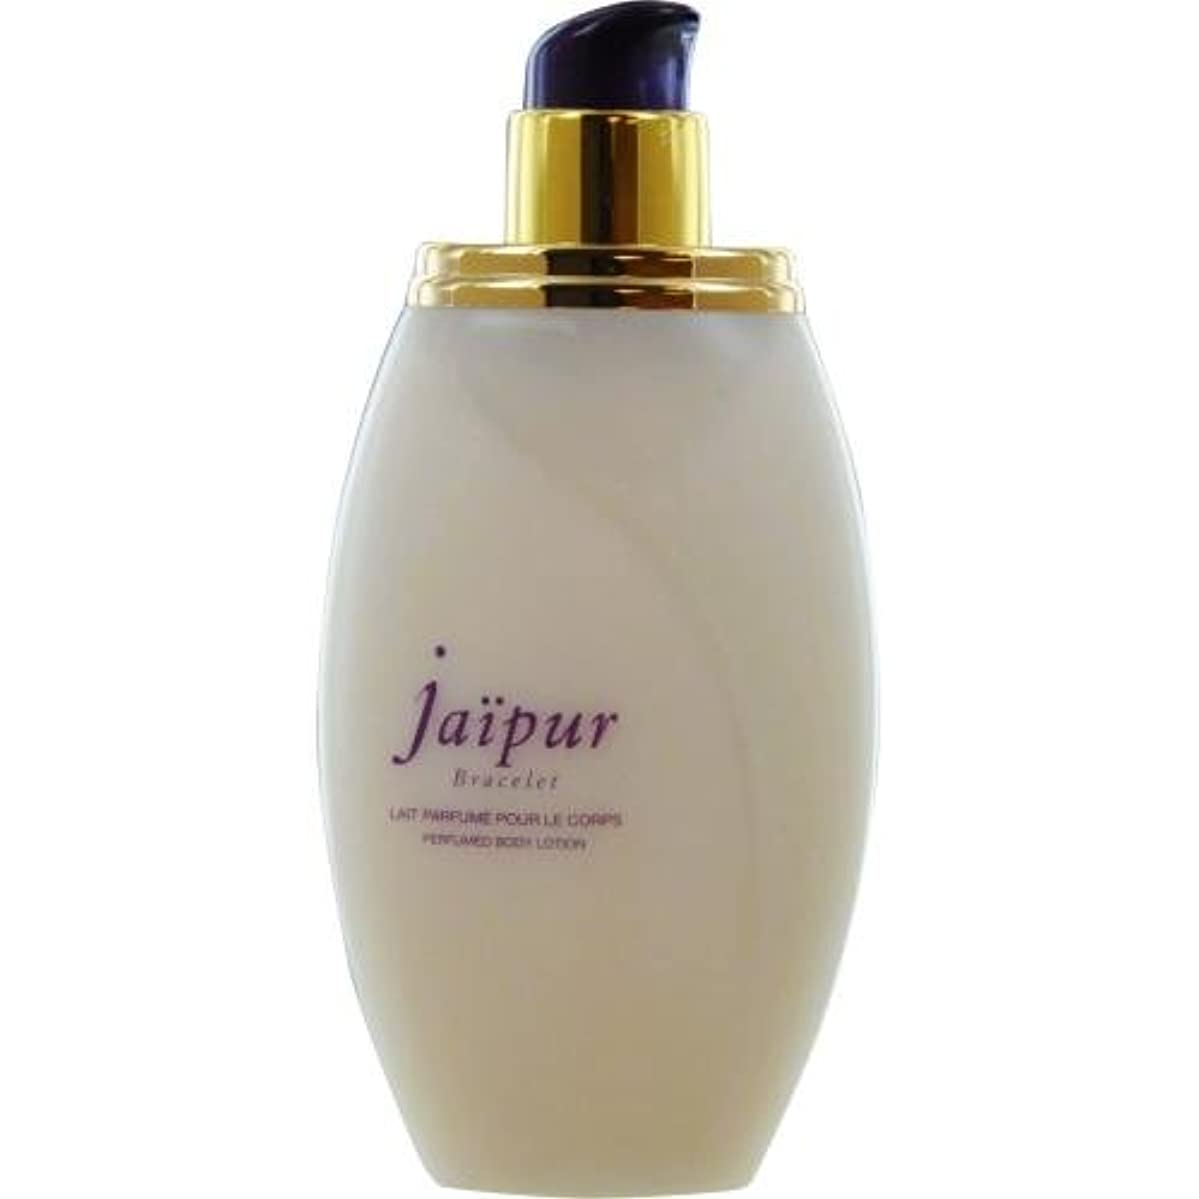 市場樹皮昆虫Jaipur Bracelet Perfumed Body Lotion